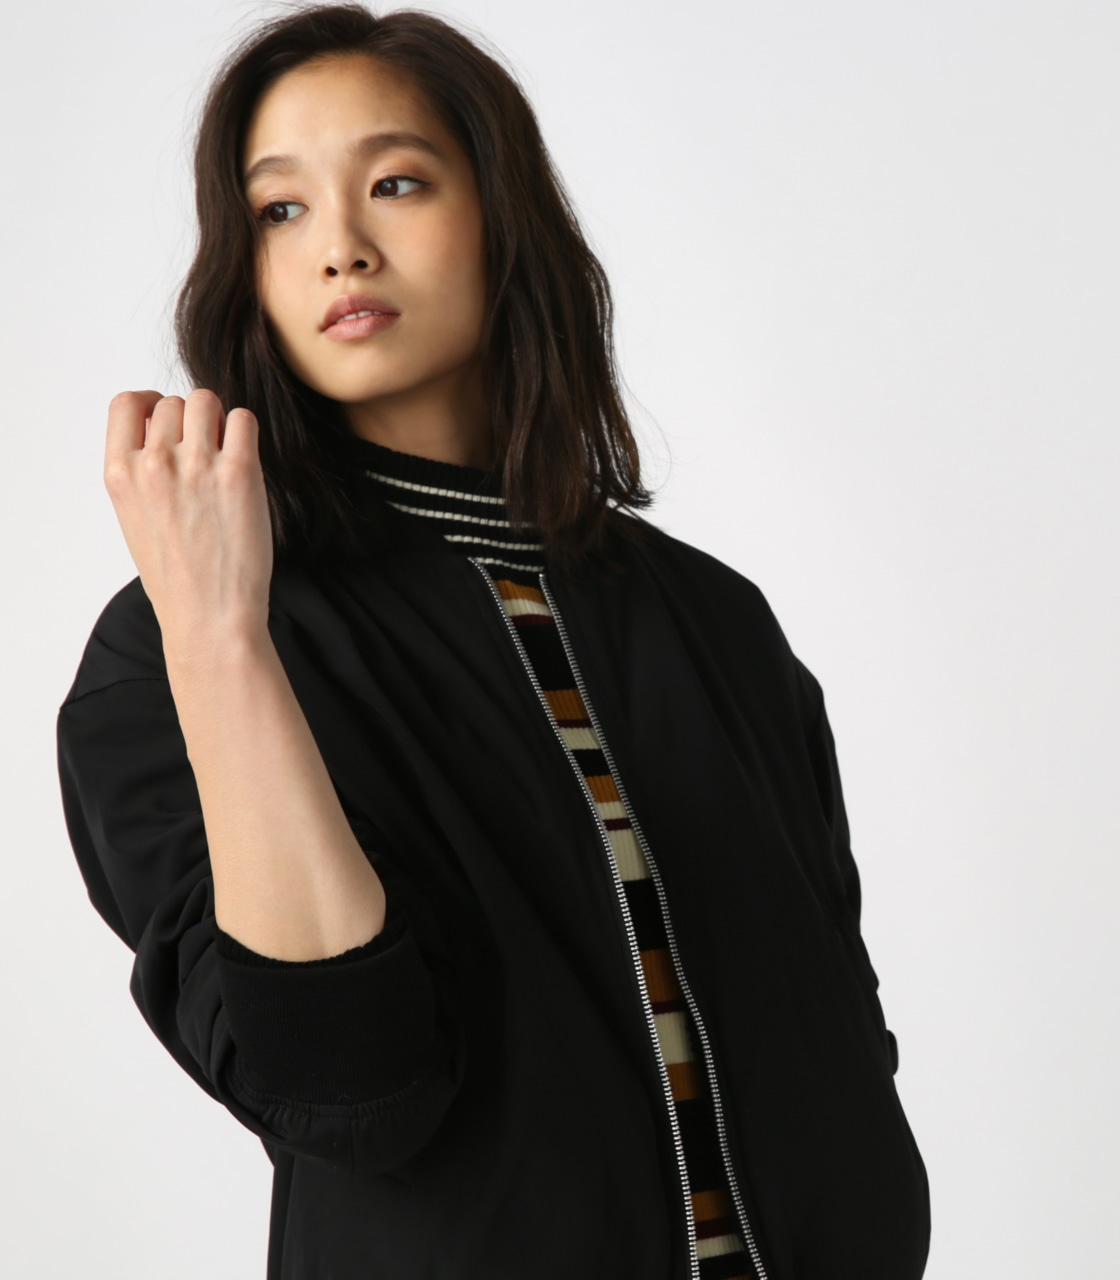 【AZUL BY MOUSSY】リバーシブルボアブルゾン 詳細画像 BLK 2